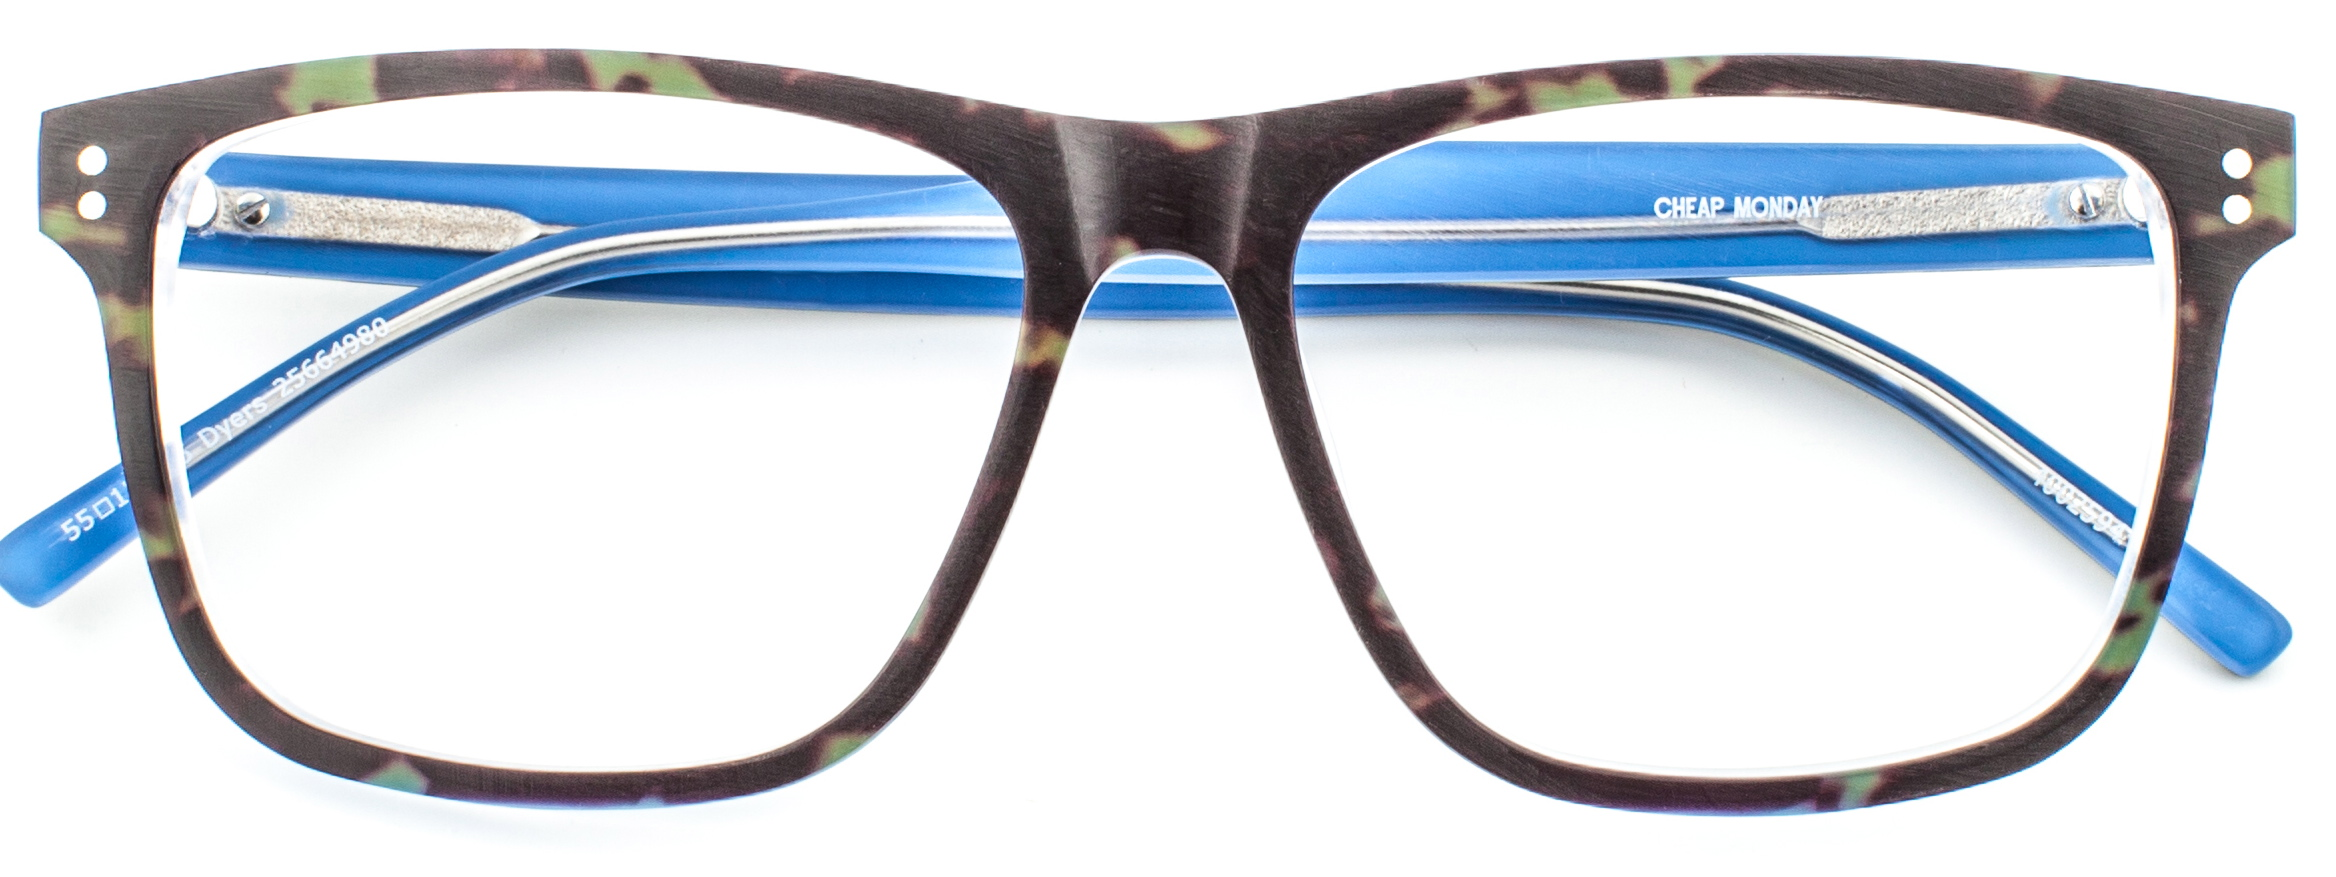 Green Glasses Frames Specsavers : New glasses? Specsavers SS14 fashion frames launches So ...